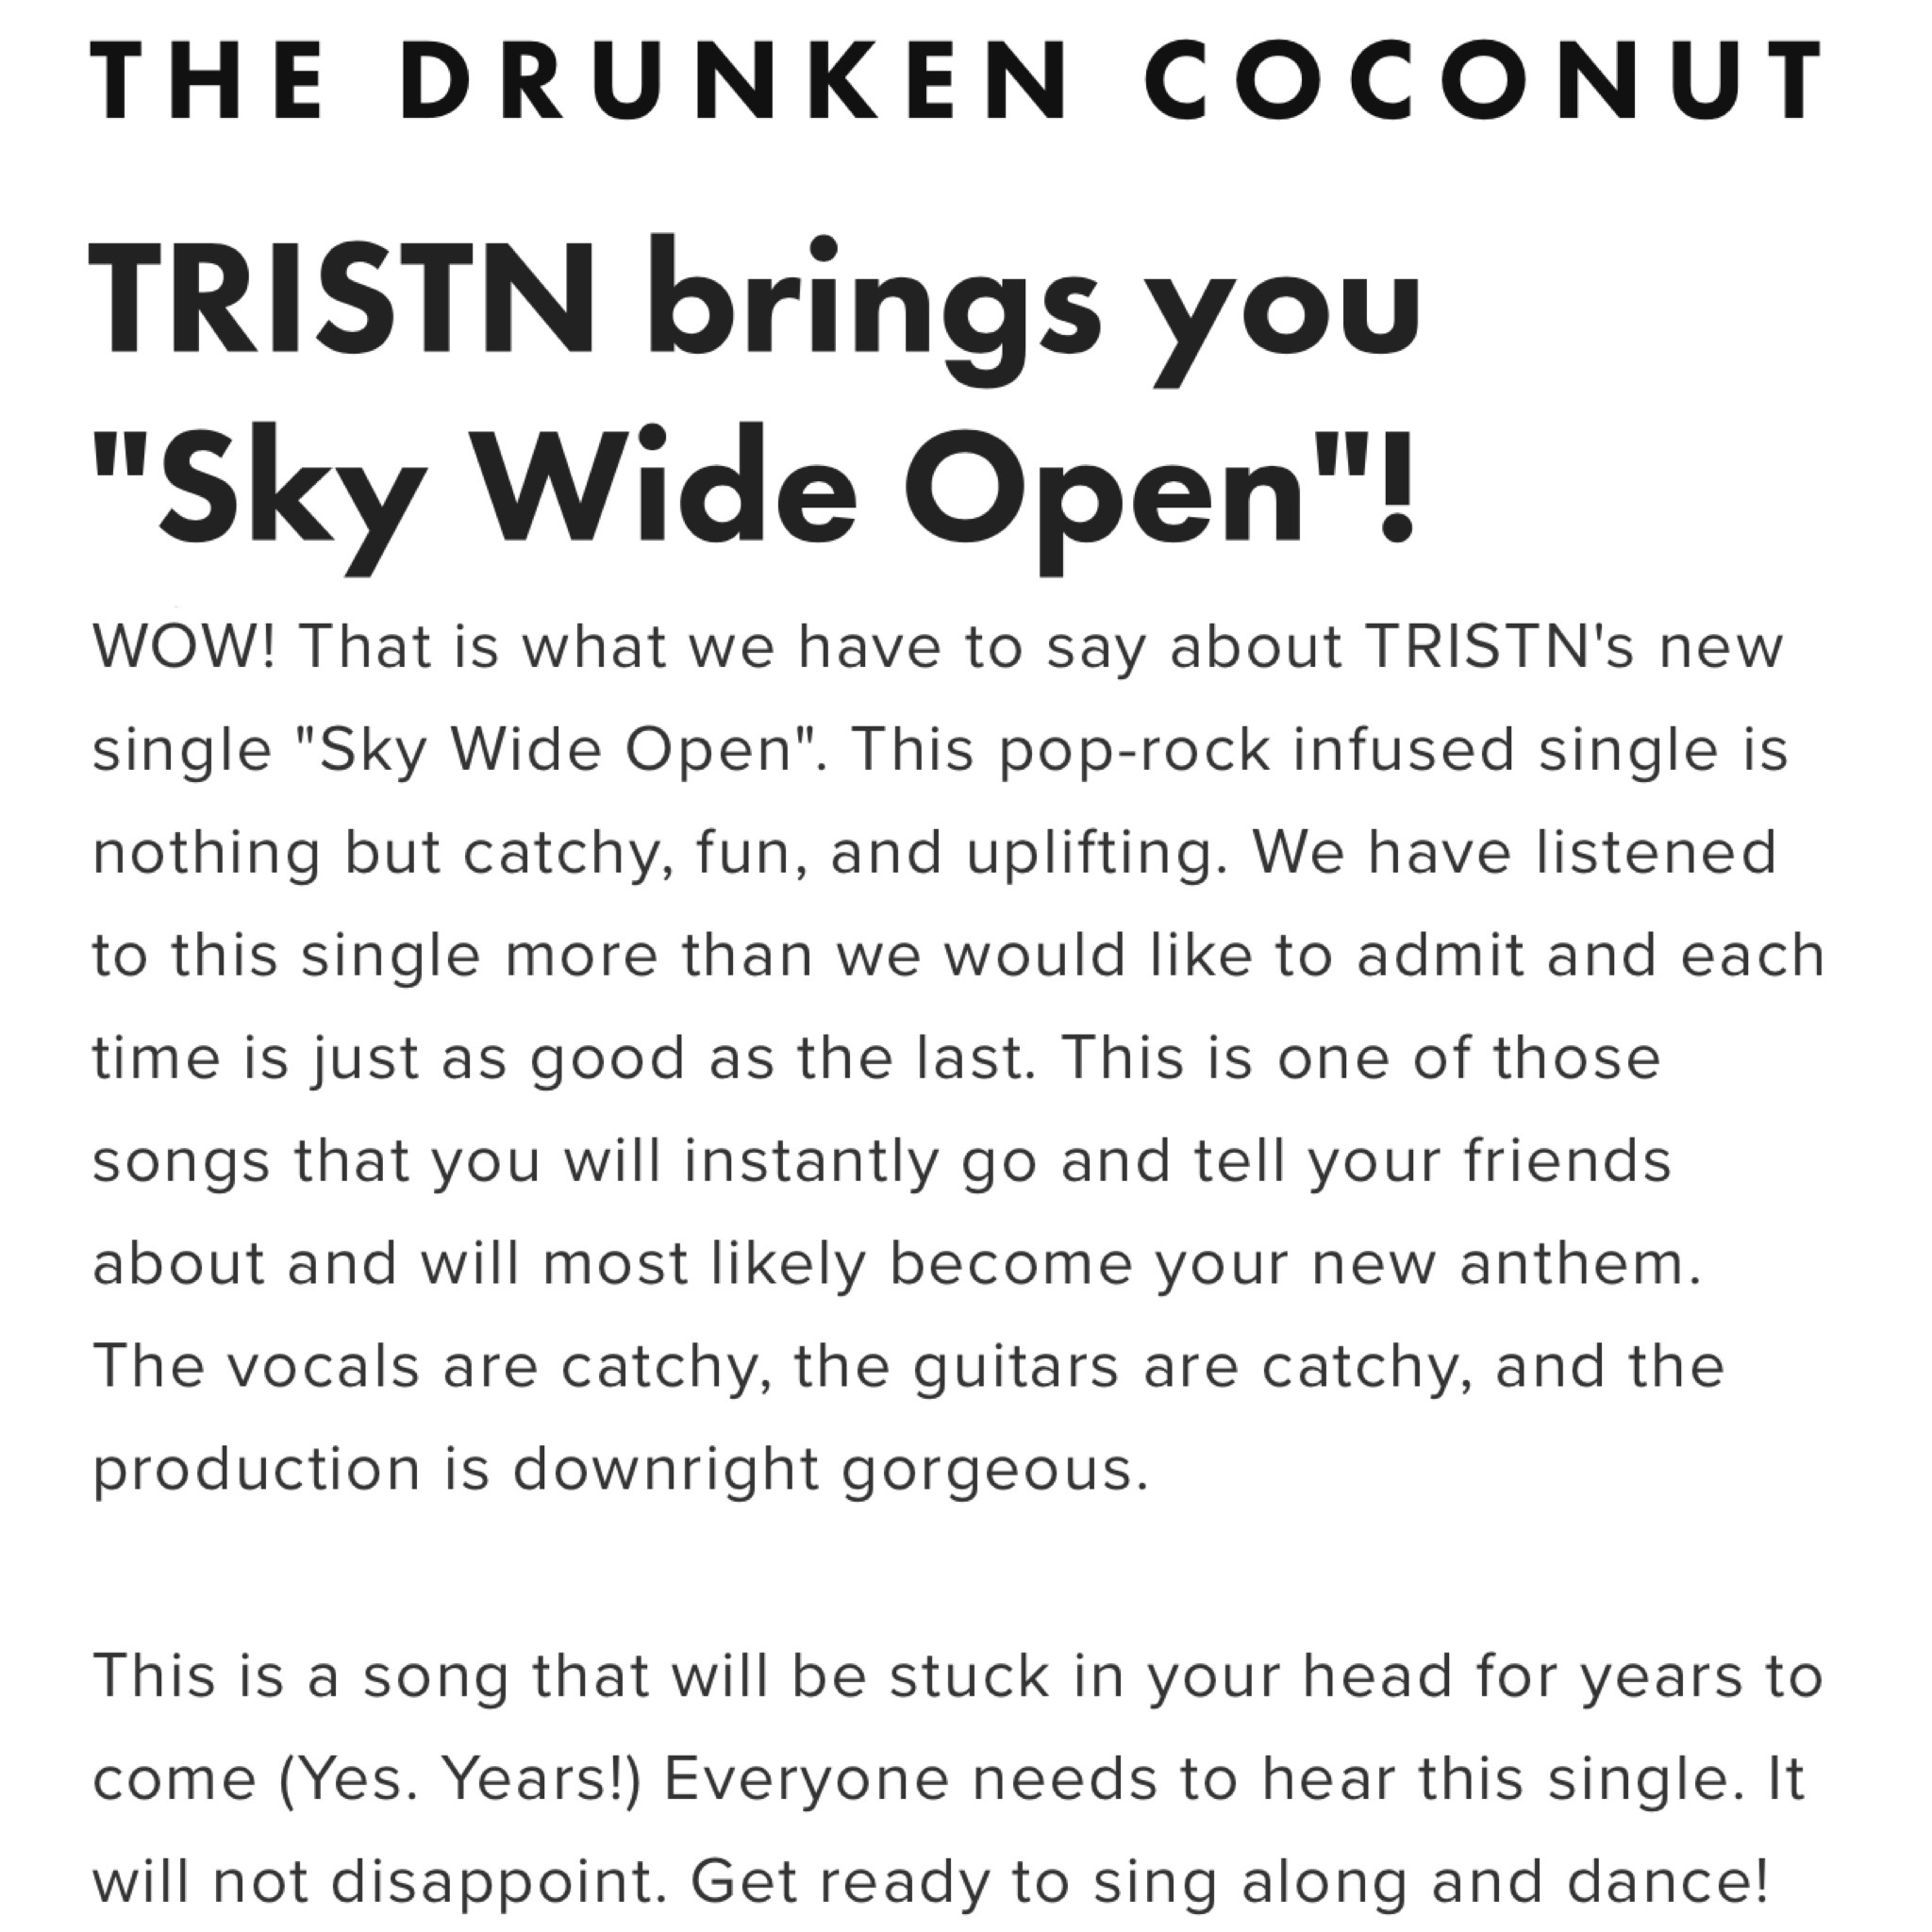 THE DRUNKEN COCONUT - REVIEW -